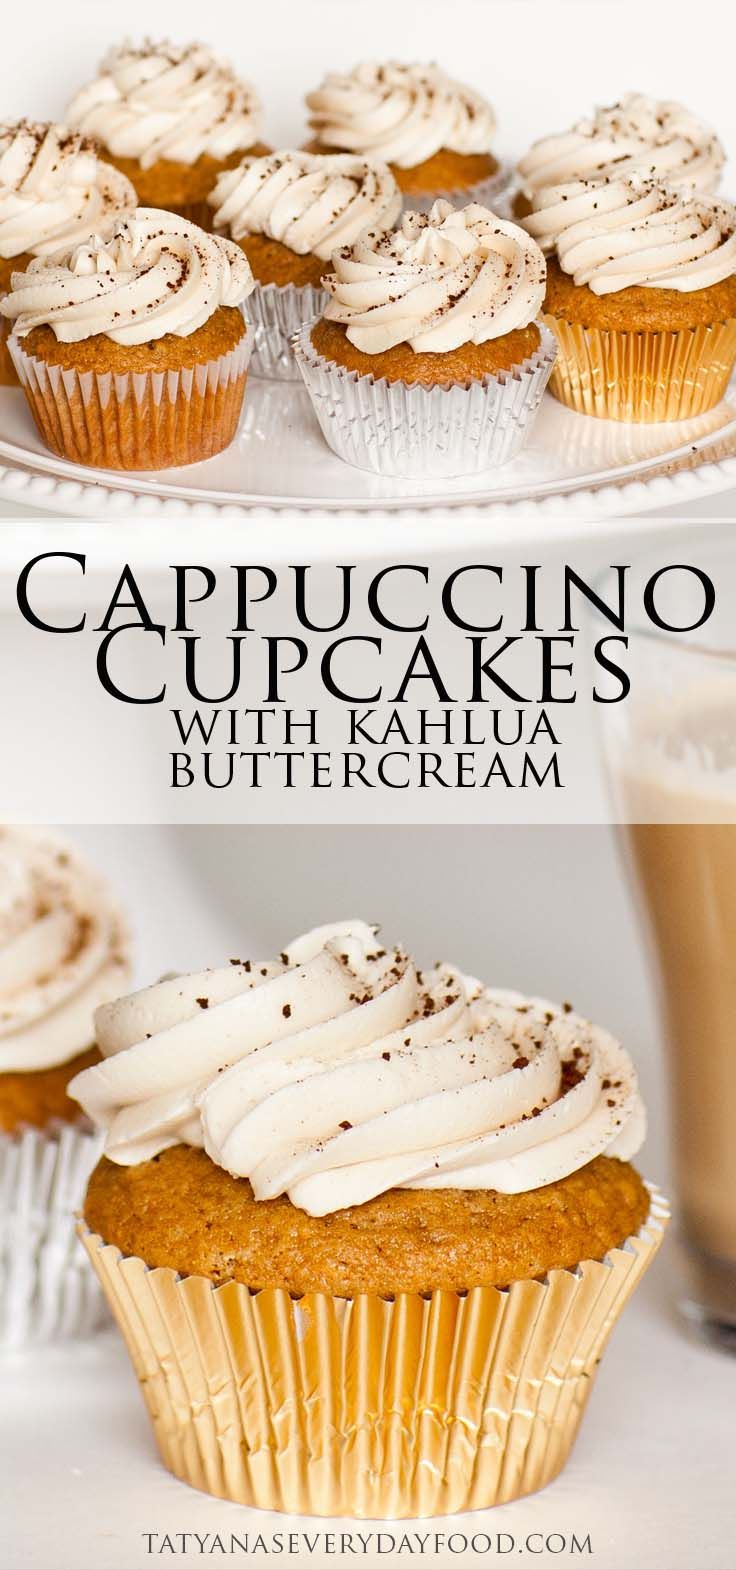 These moist, coffee-flavored cupcakes topped with Kahlua butter cream are easy to make and are oh-so-good! If you're a coffee-lover, you will definitely enjoy this sweet treat! The light and moist cupcakes aren't too sweet and are perfectly complimented by the fluffy, sweet and boozy butter cream. This recipe makes for 24 cupcakes but they'll […]